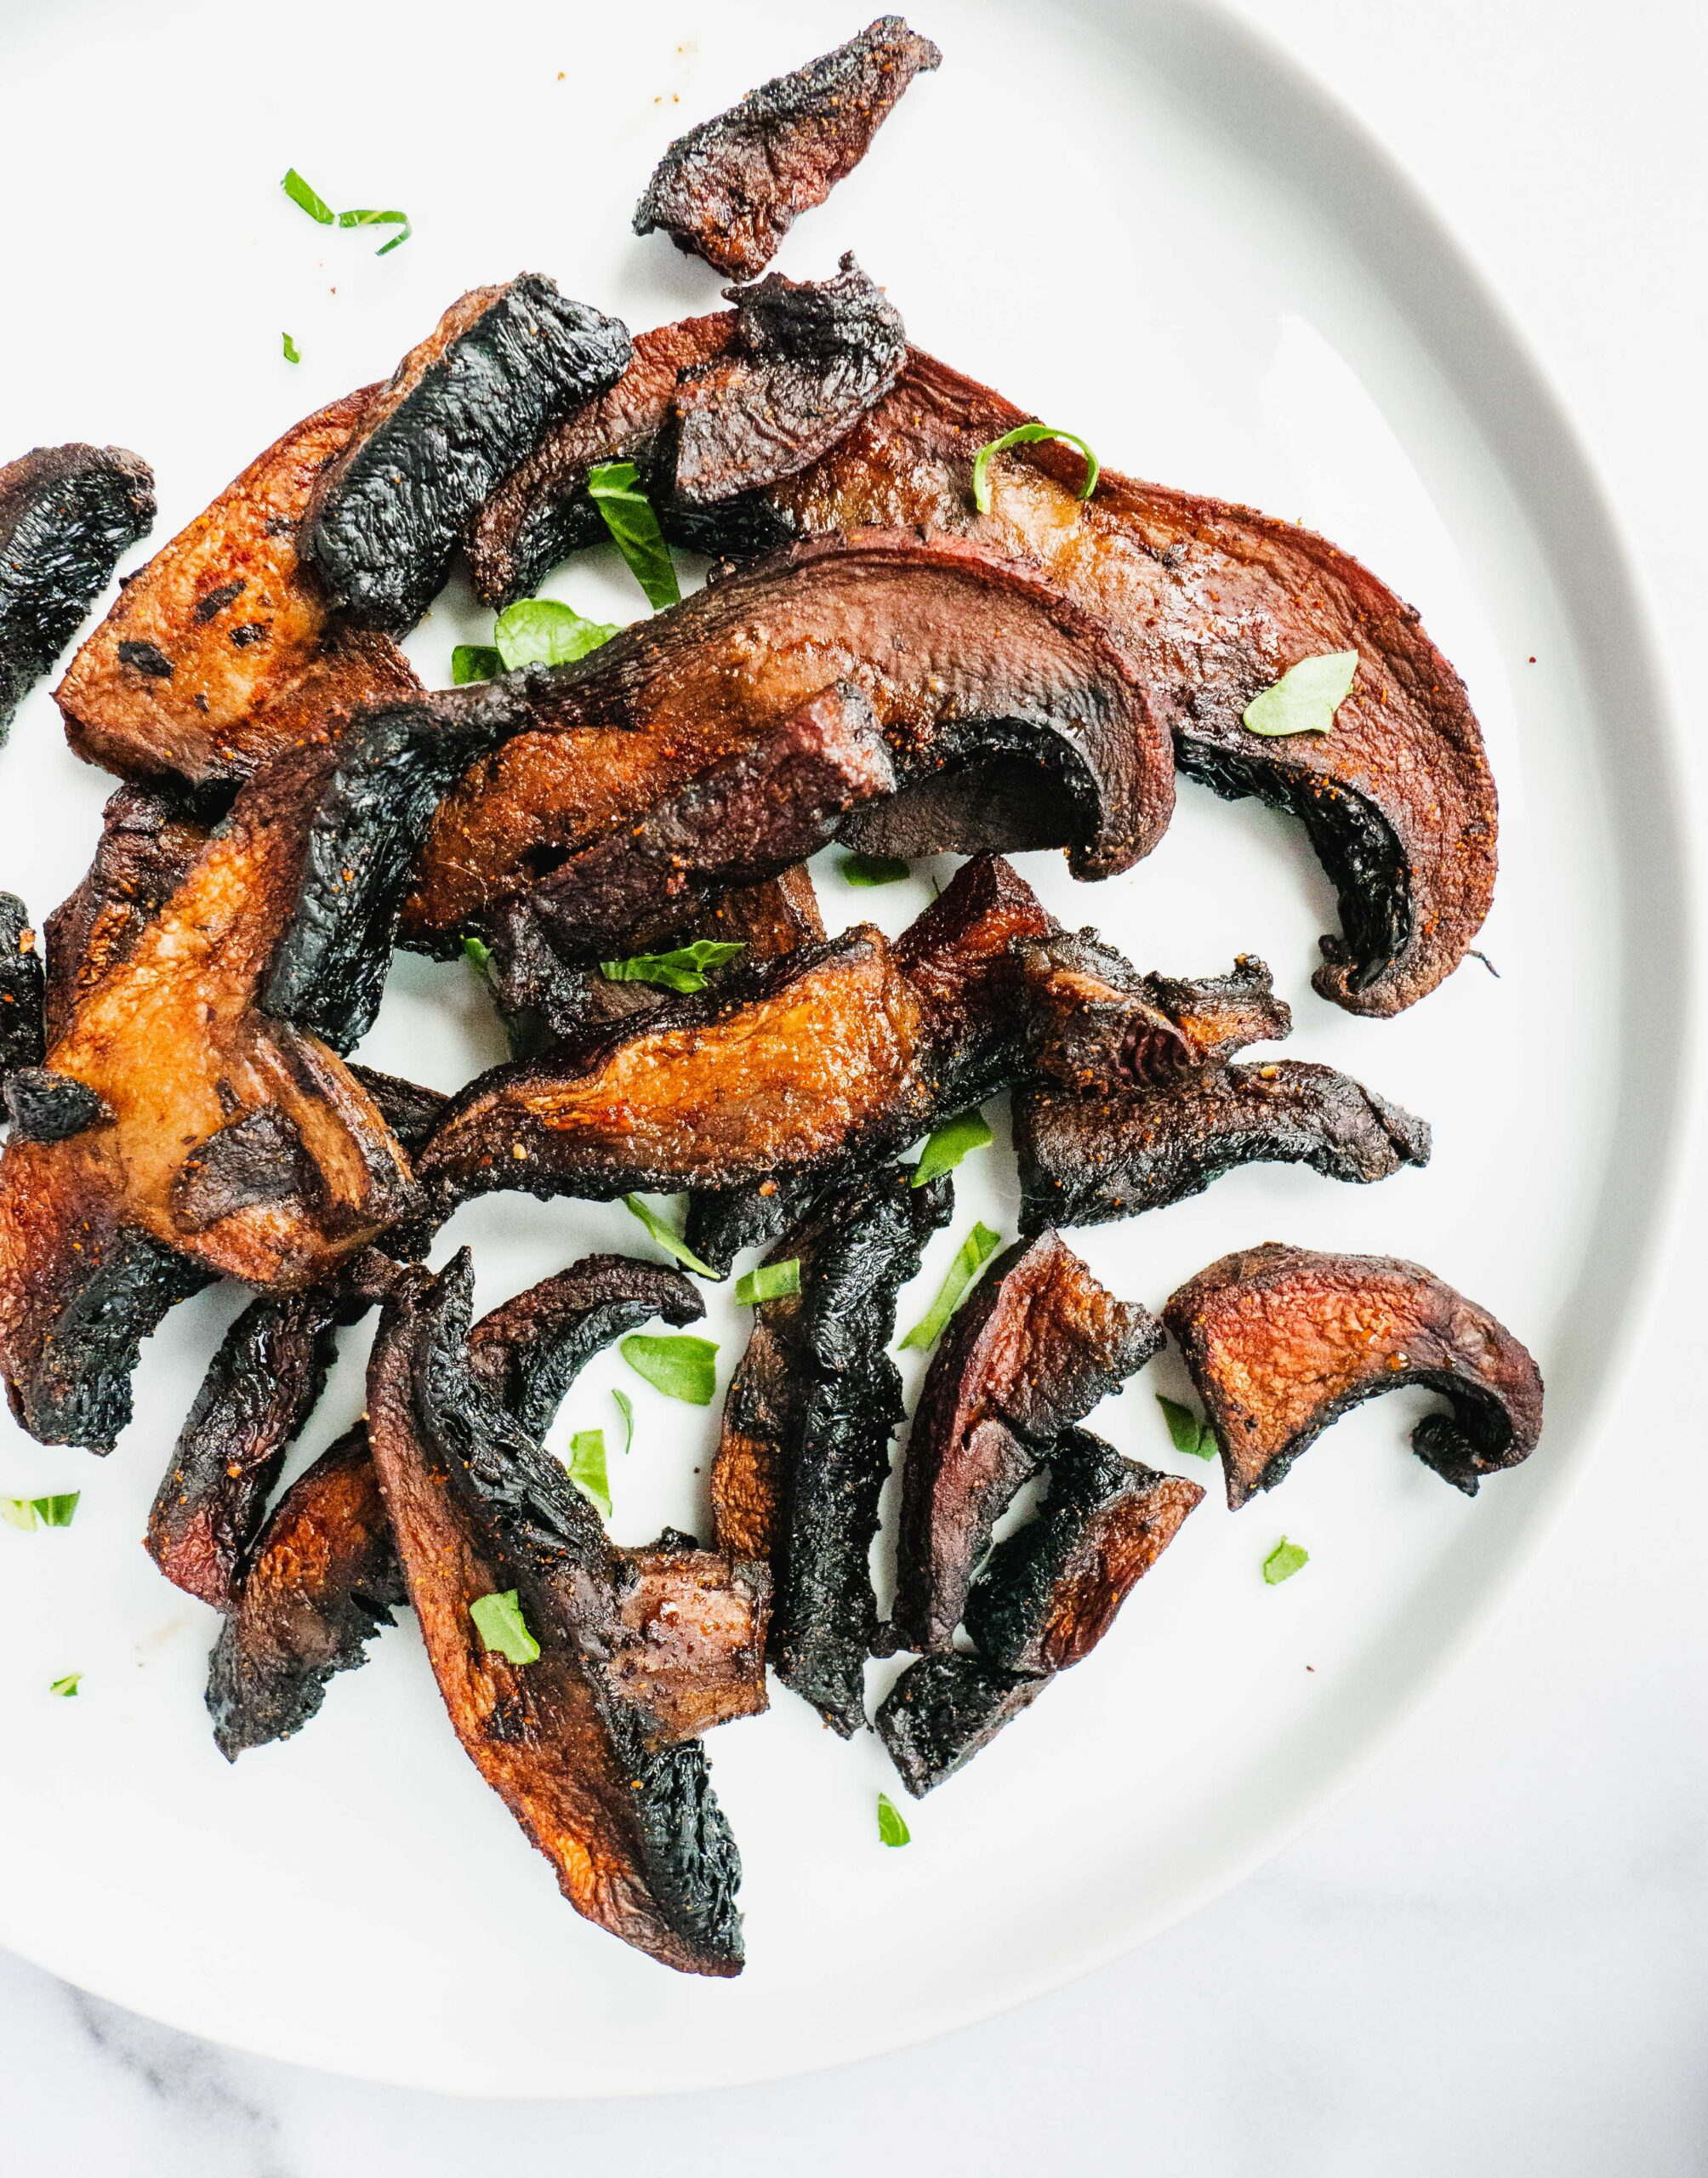 Best Vegan Mushroom Bacon | These Vegan bacon made with portobello mushrooms are sweet, salt and smoky. It is crispy on the outside, meaty on the inside. Just magical. Plant based vegan bacon can taste as good as the real bacon? Yes you better believe it. |#veganrecipe #veganbacon #veganbreakfast #mushroom #smokybacon